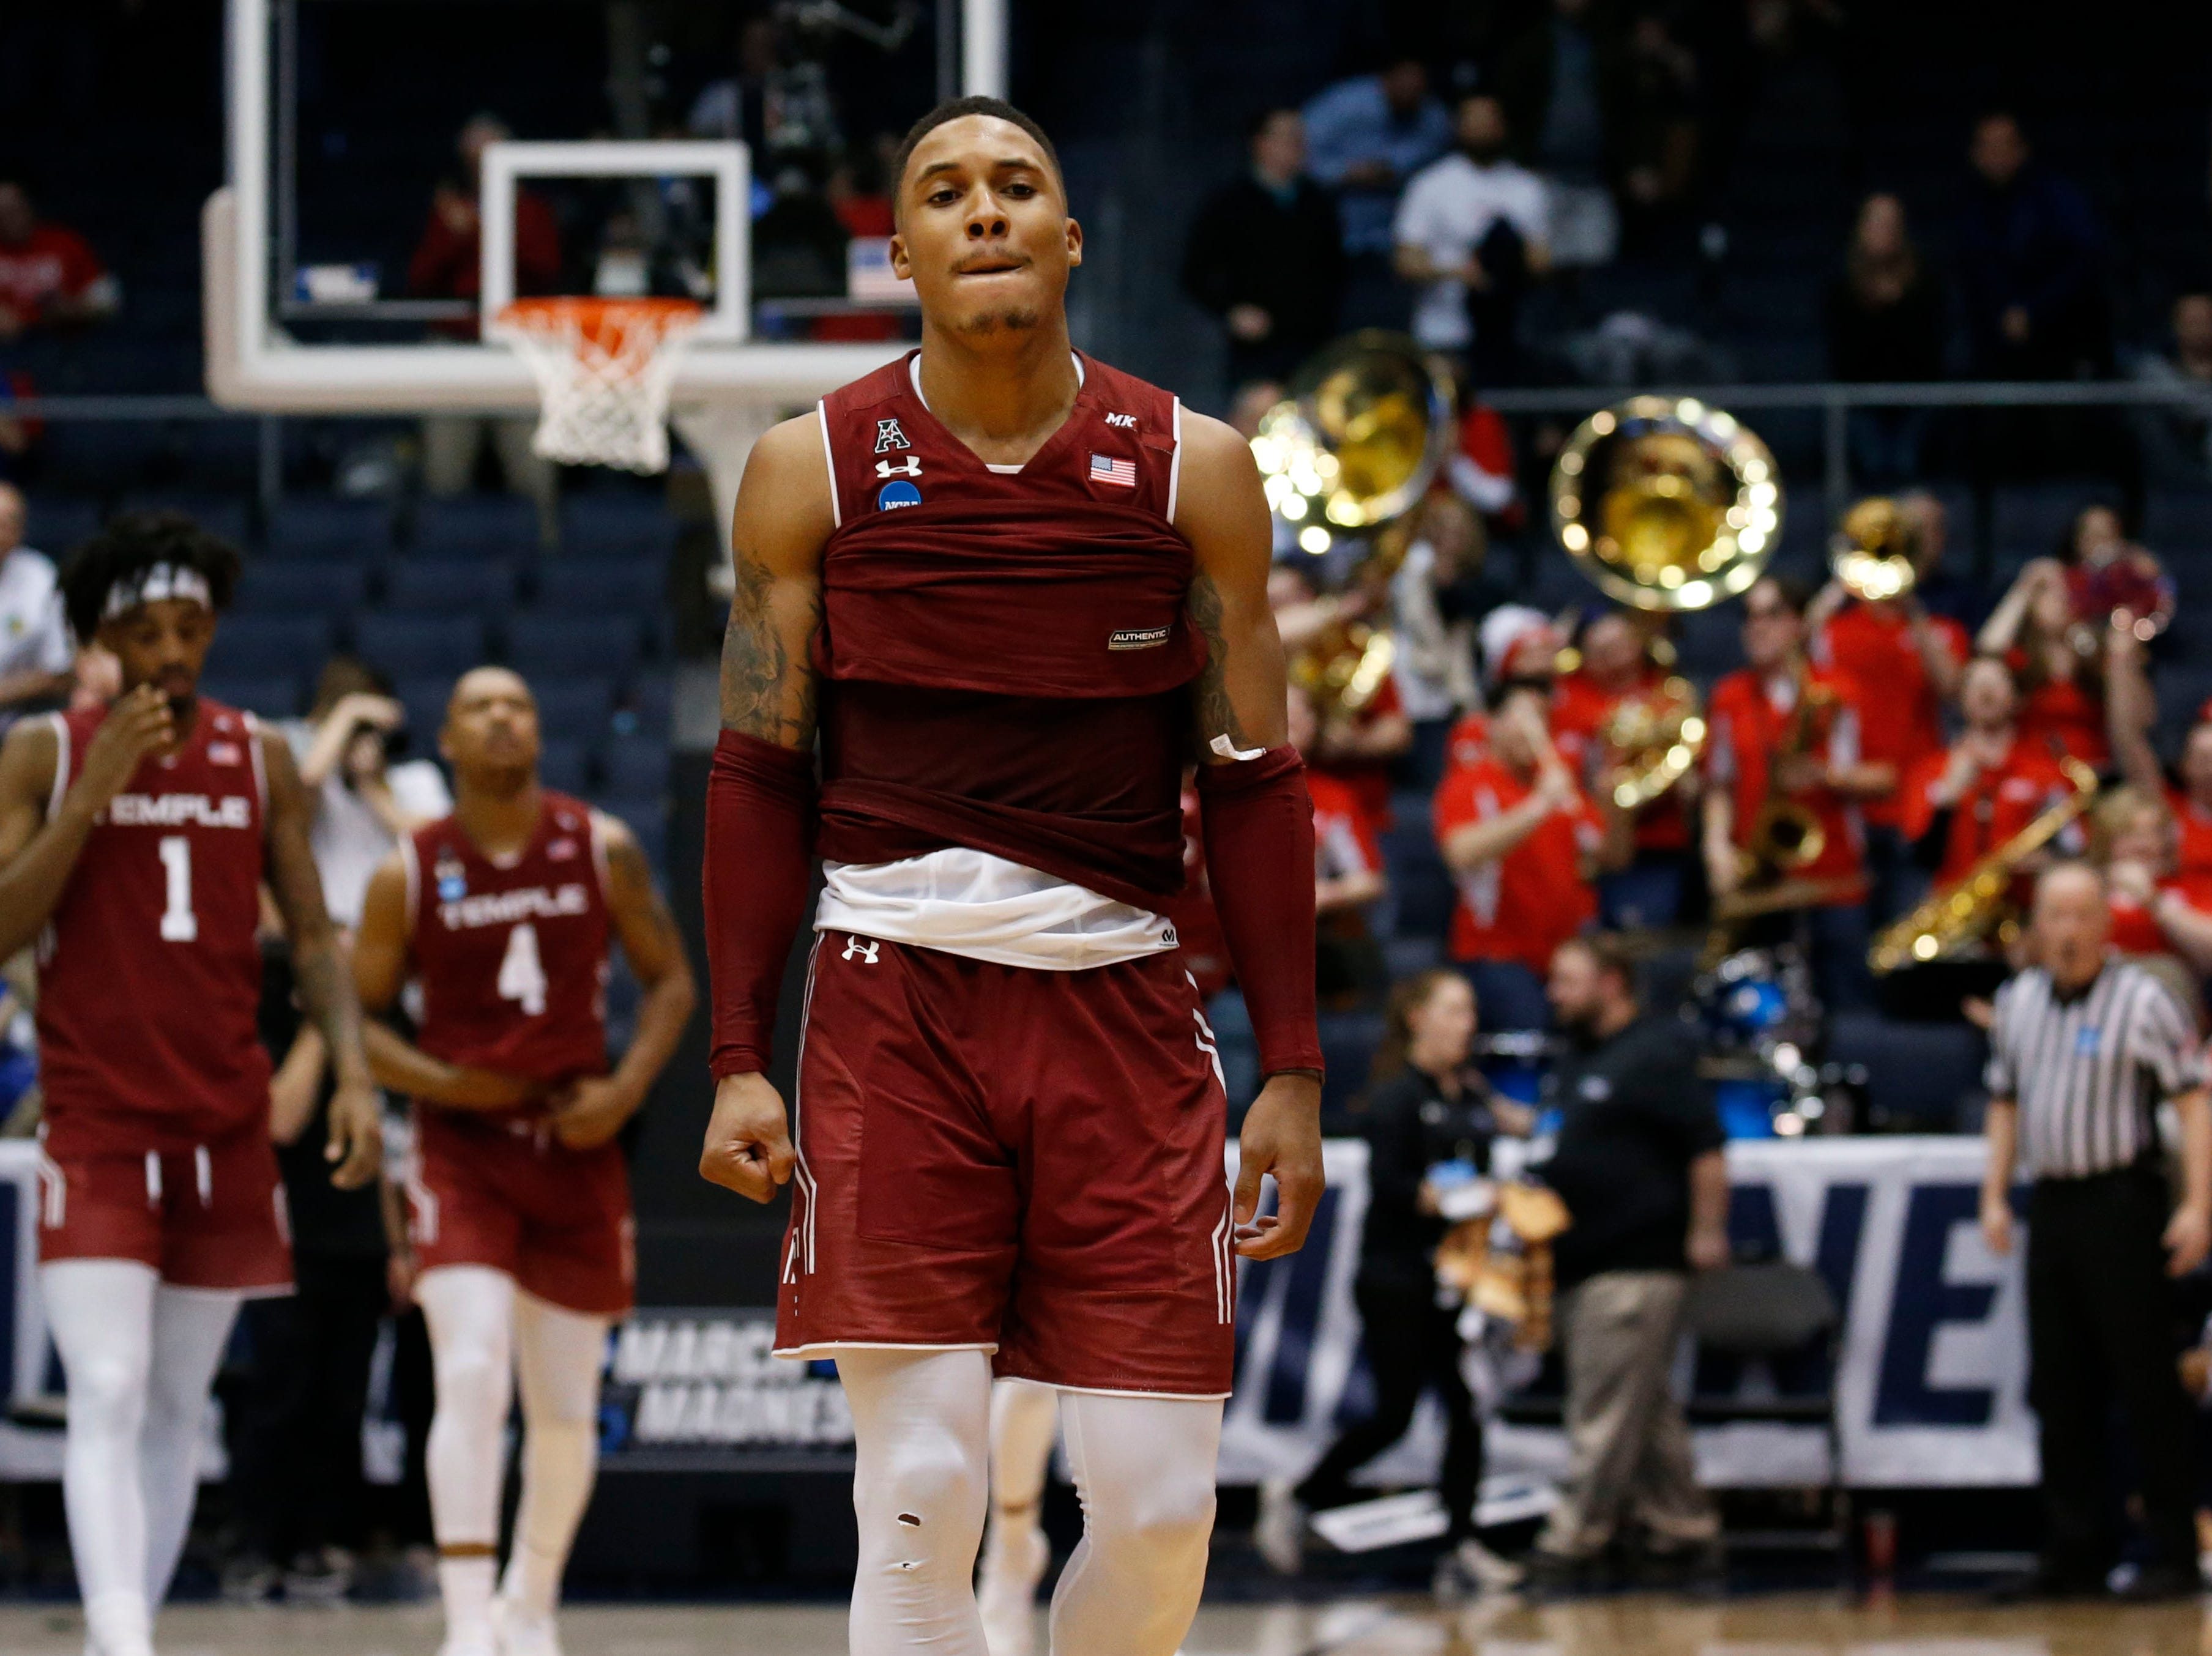 First Four: Temple loses to Belmont, 81-70.